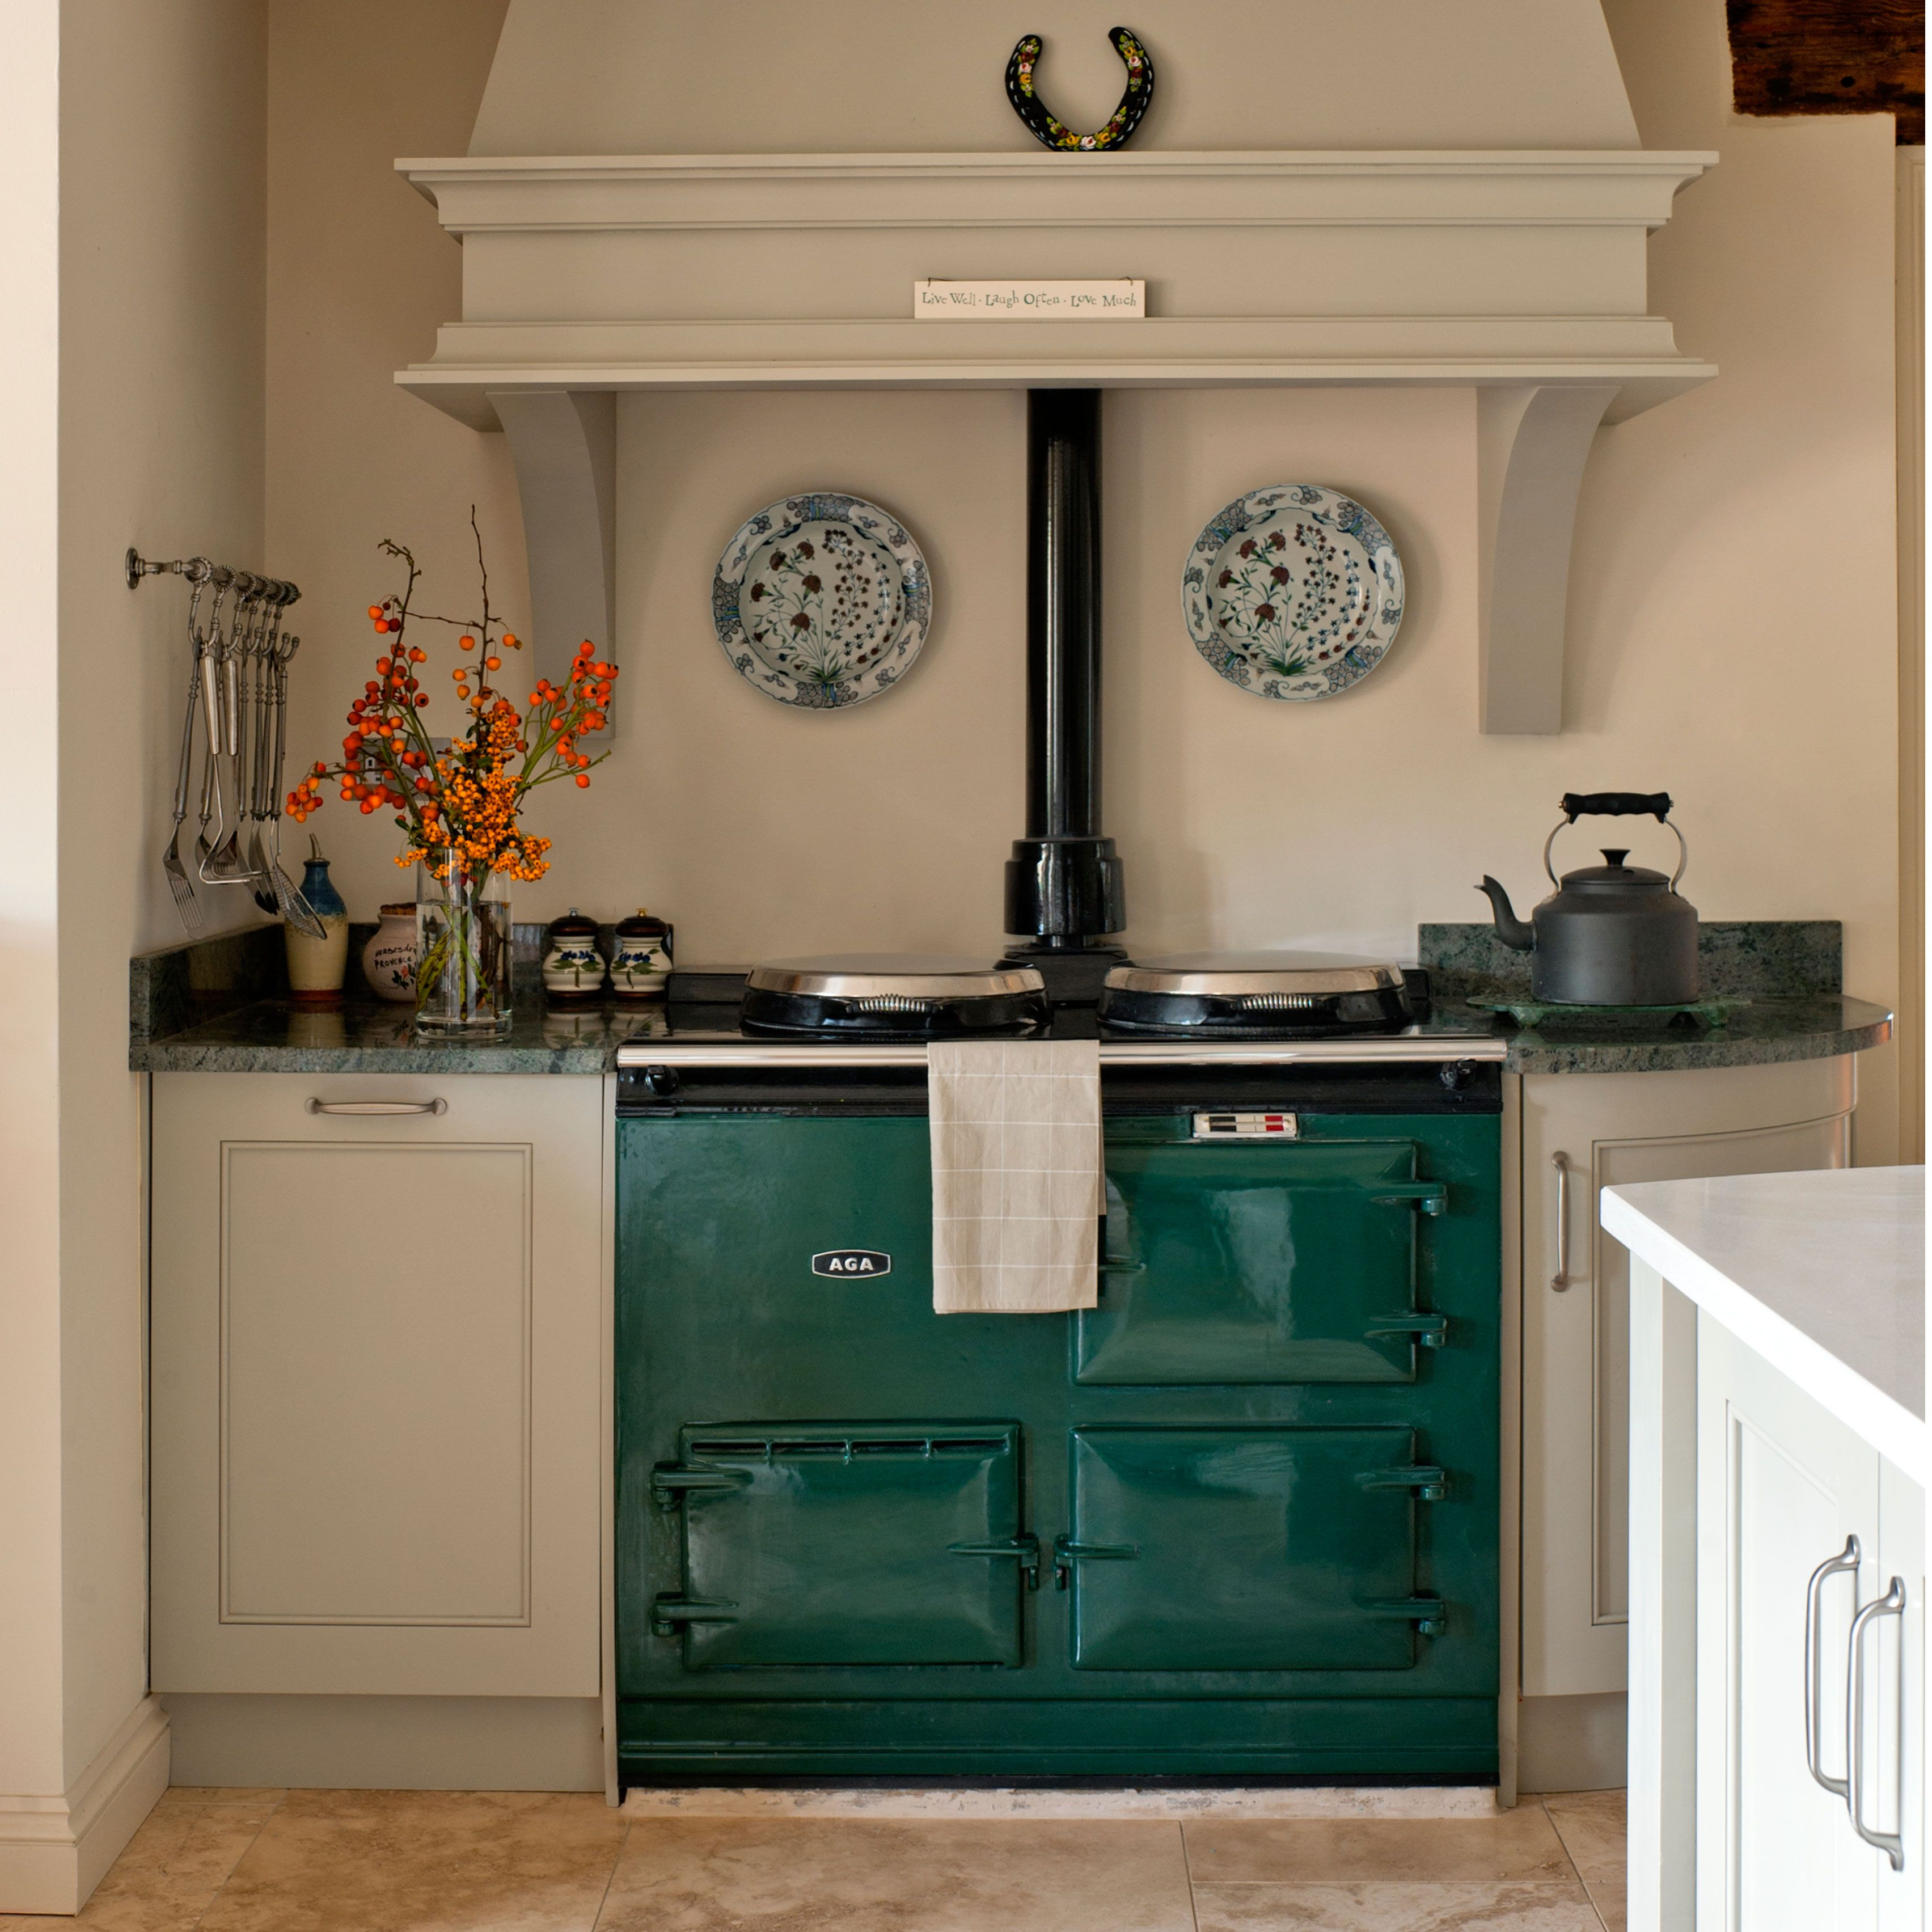 image result for green aga kitchen ideas country kitchen range cooker kitchen timeless kitchen on kitchen ideas emerald green id=75936